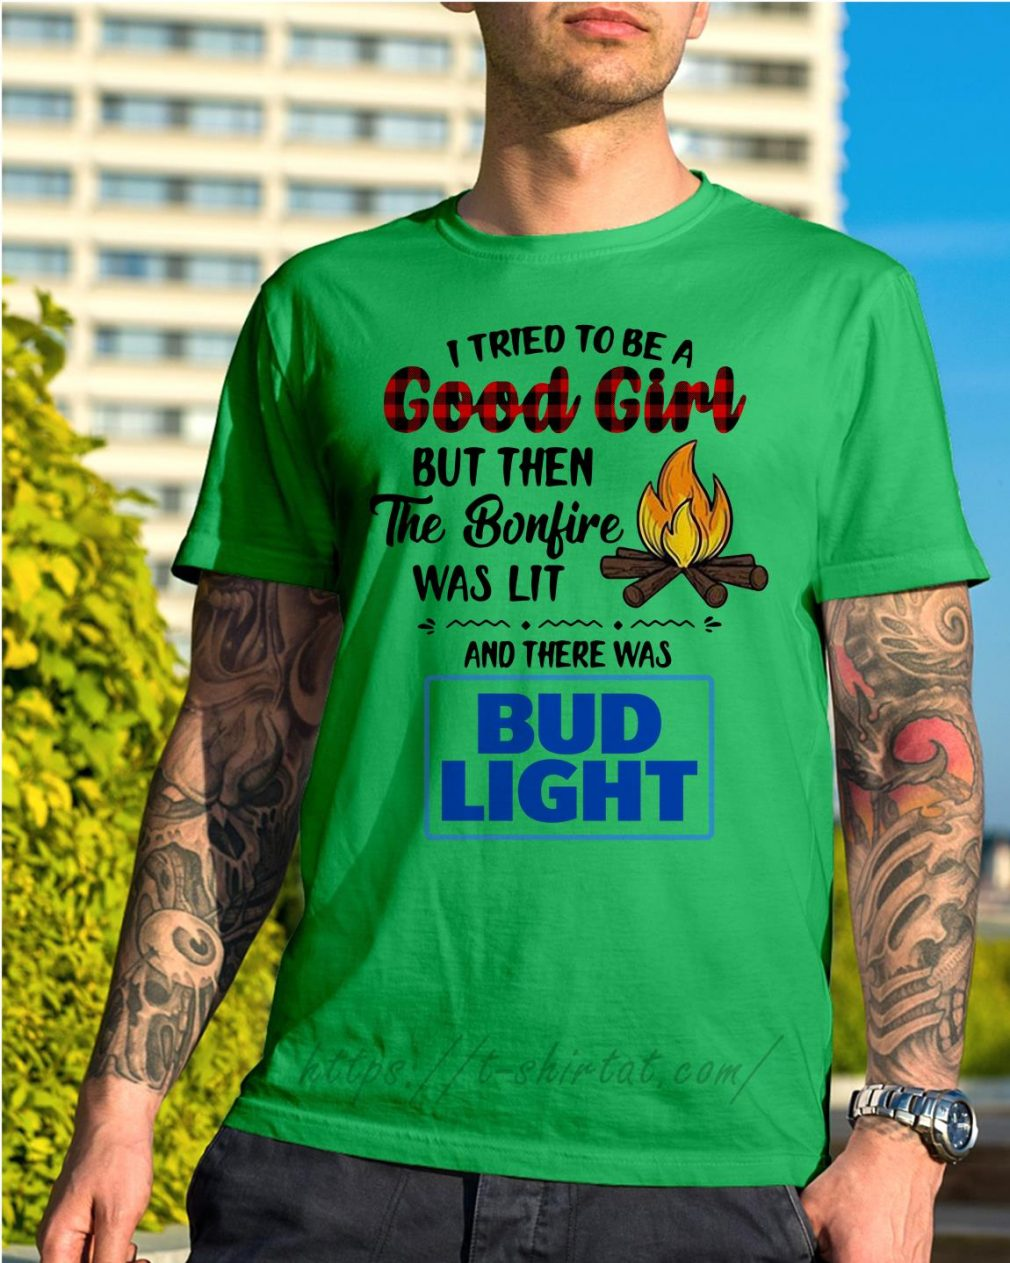 The bonfire was lit and there was Bud Light Shirt green